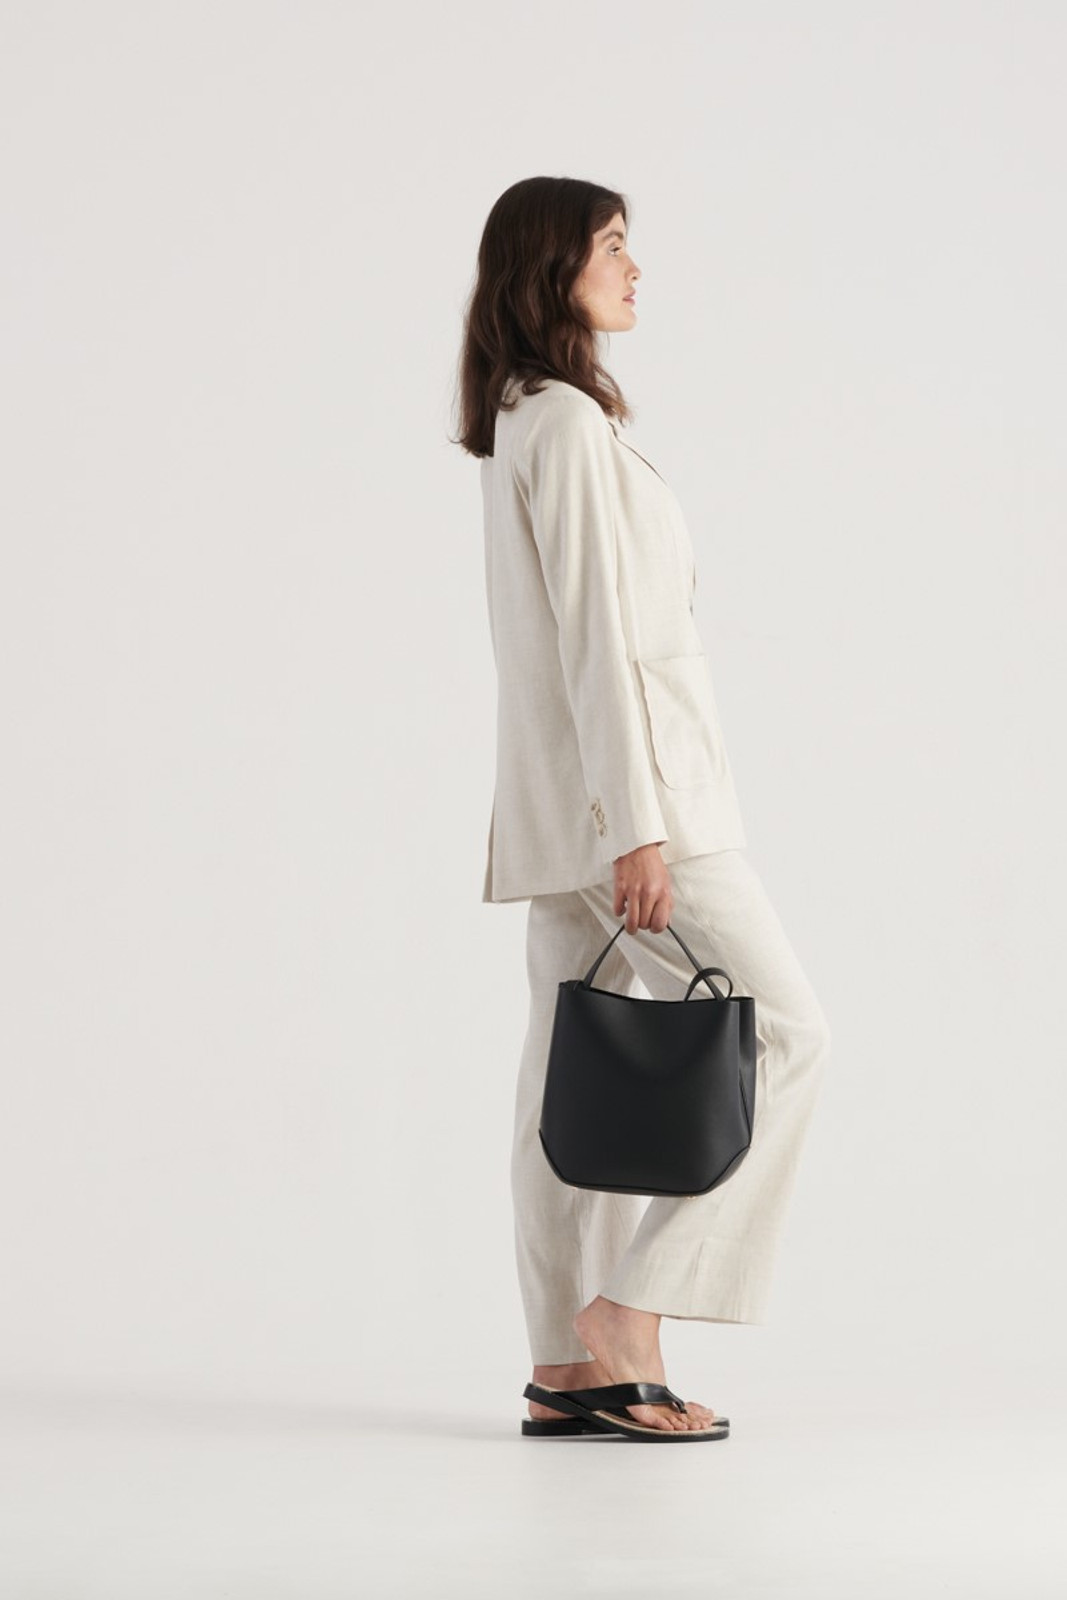 Elka Collective WOMENS Neutrals Cate Jacket 6